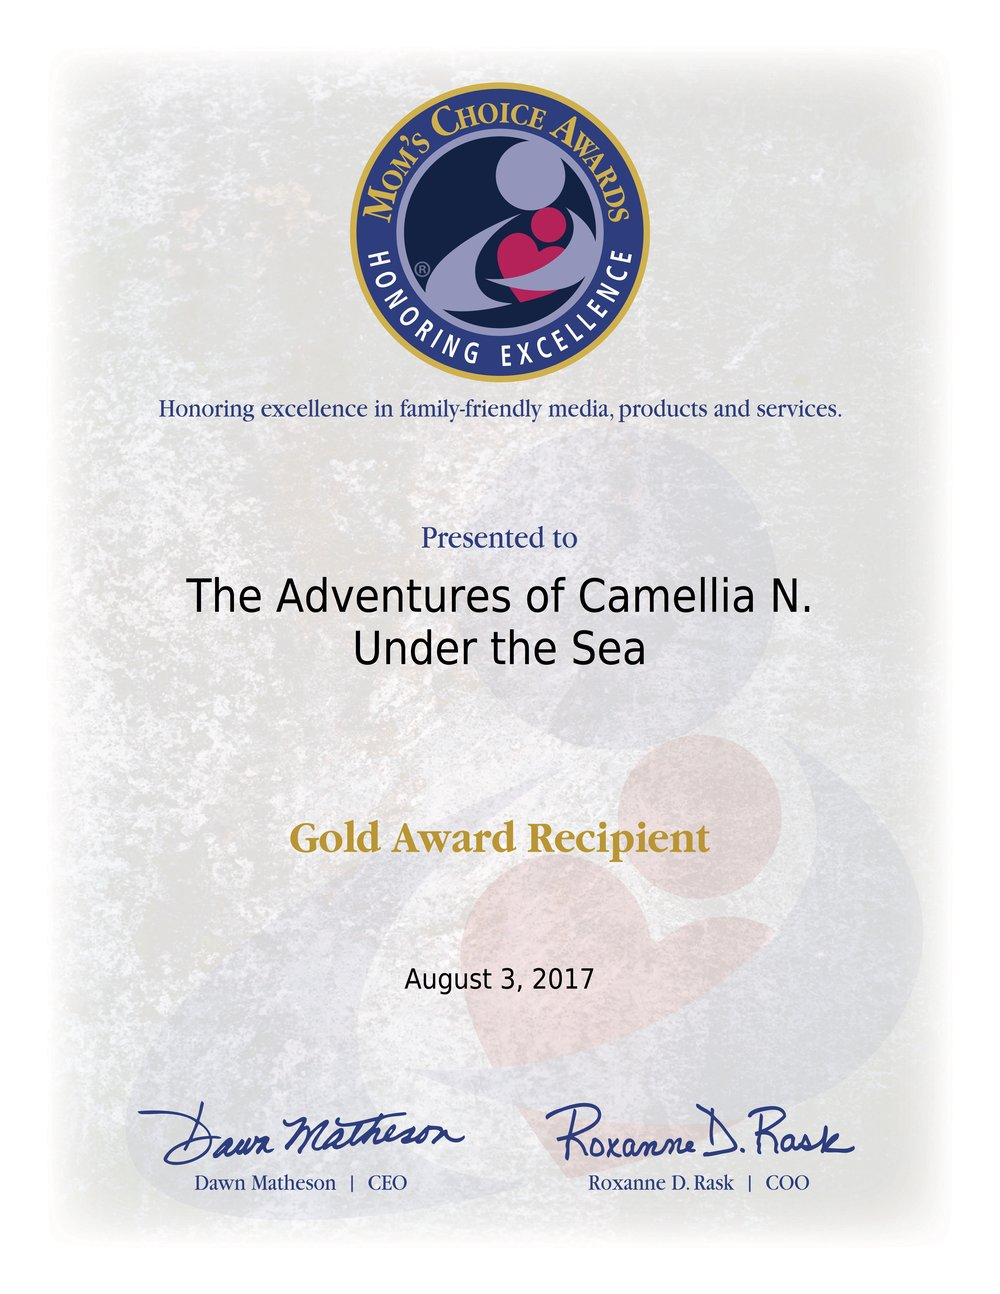 Gold Recipient - We are so honored to announce...Mom's Choice Awards has awarded book two of the series, The Adventures of Camellia N - Under The Sea ,with its highest honor - its Gold Seal! This book joins the first book, The Arctic, winning gold! The Mom's Choice Award program is globally recognized for establishing the benchmark of excellence in family-friendly media, products and services.